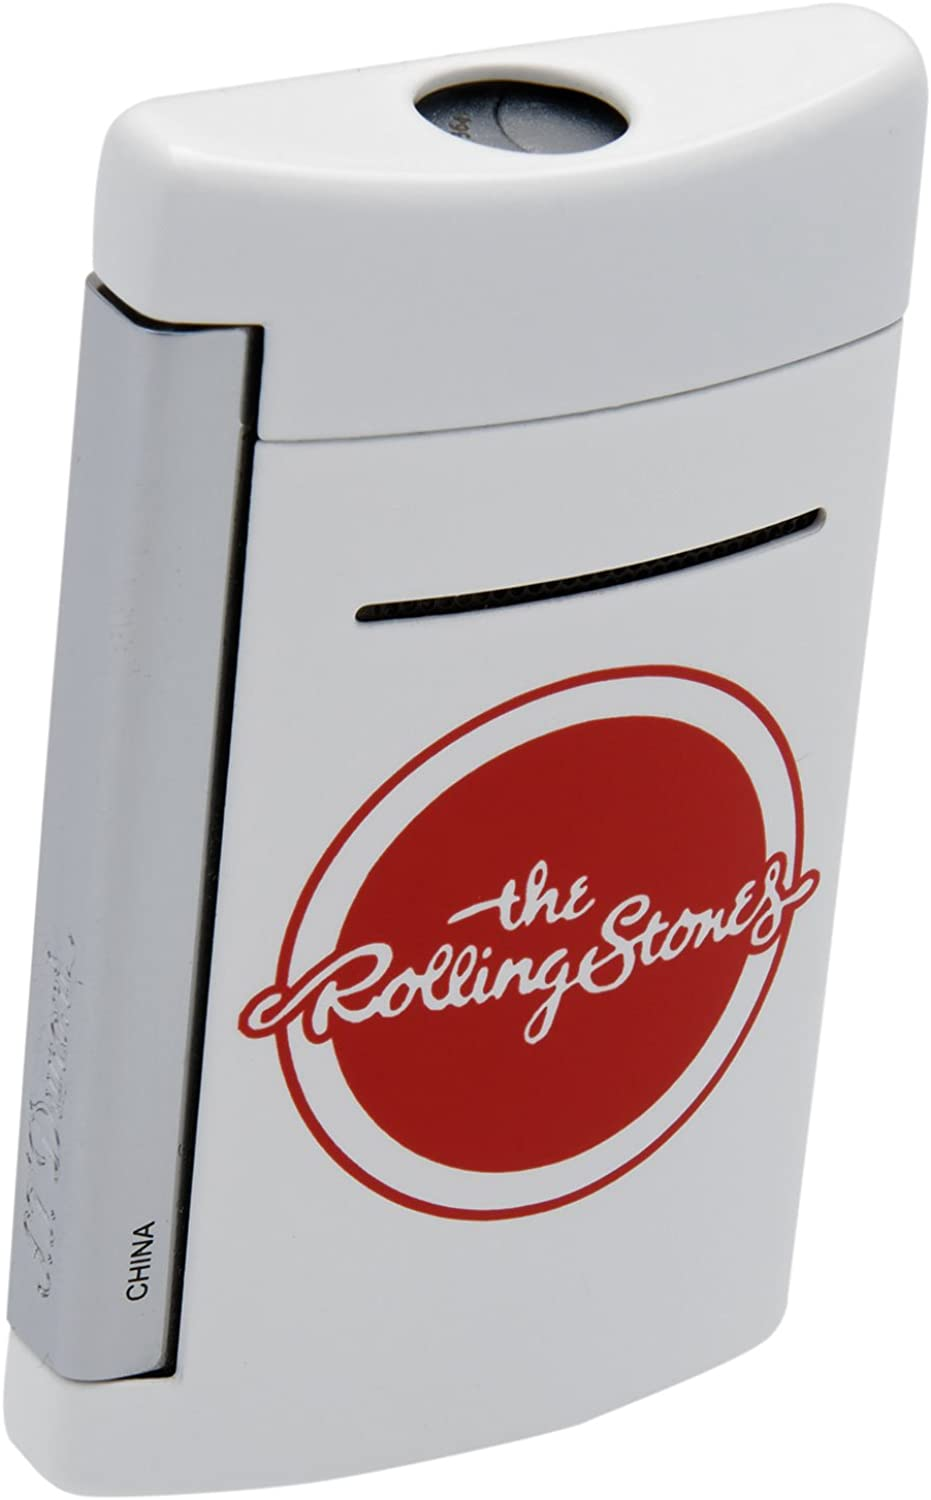 S.T. Dupont Rolling Stones White MiniJet Lighter Limited Edition Tongue and Lips 010109RS